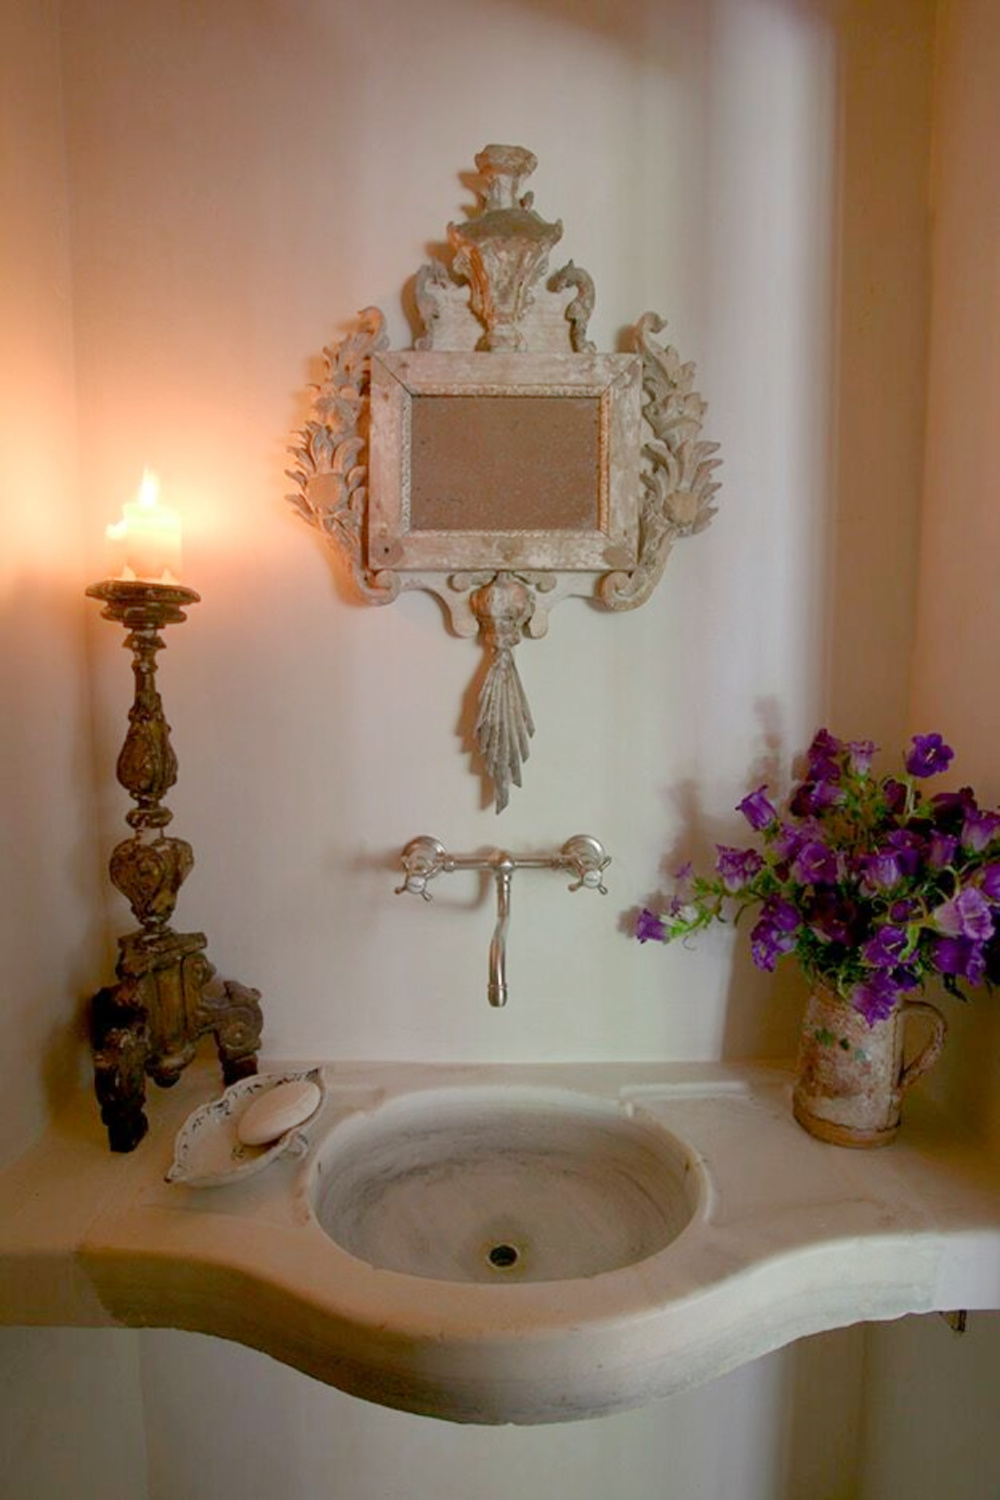 Authentic country French bath with antique stone sink and wall mount faucet - in Ruth Gay's (Chateau Domingue) home. Come tour more of the exquisite interiors!